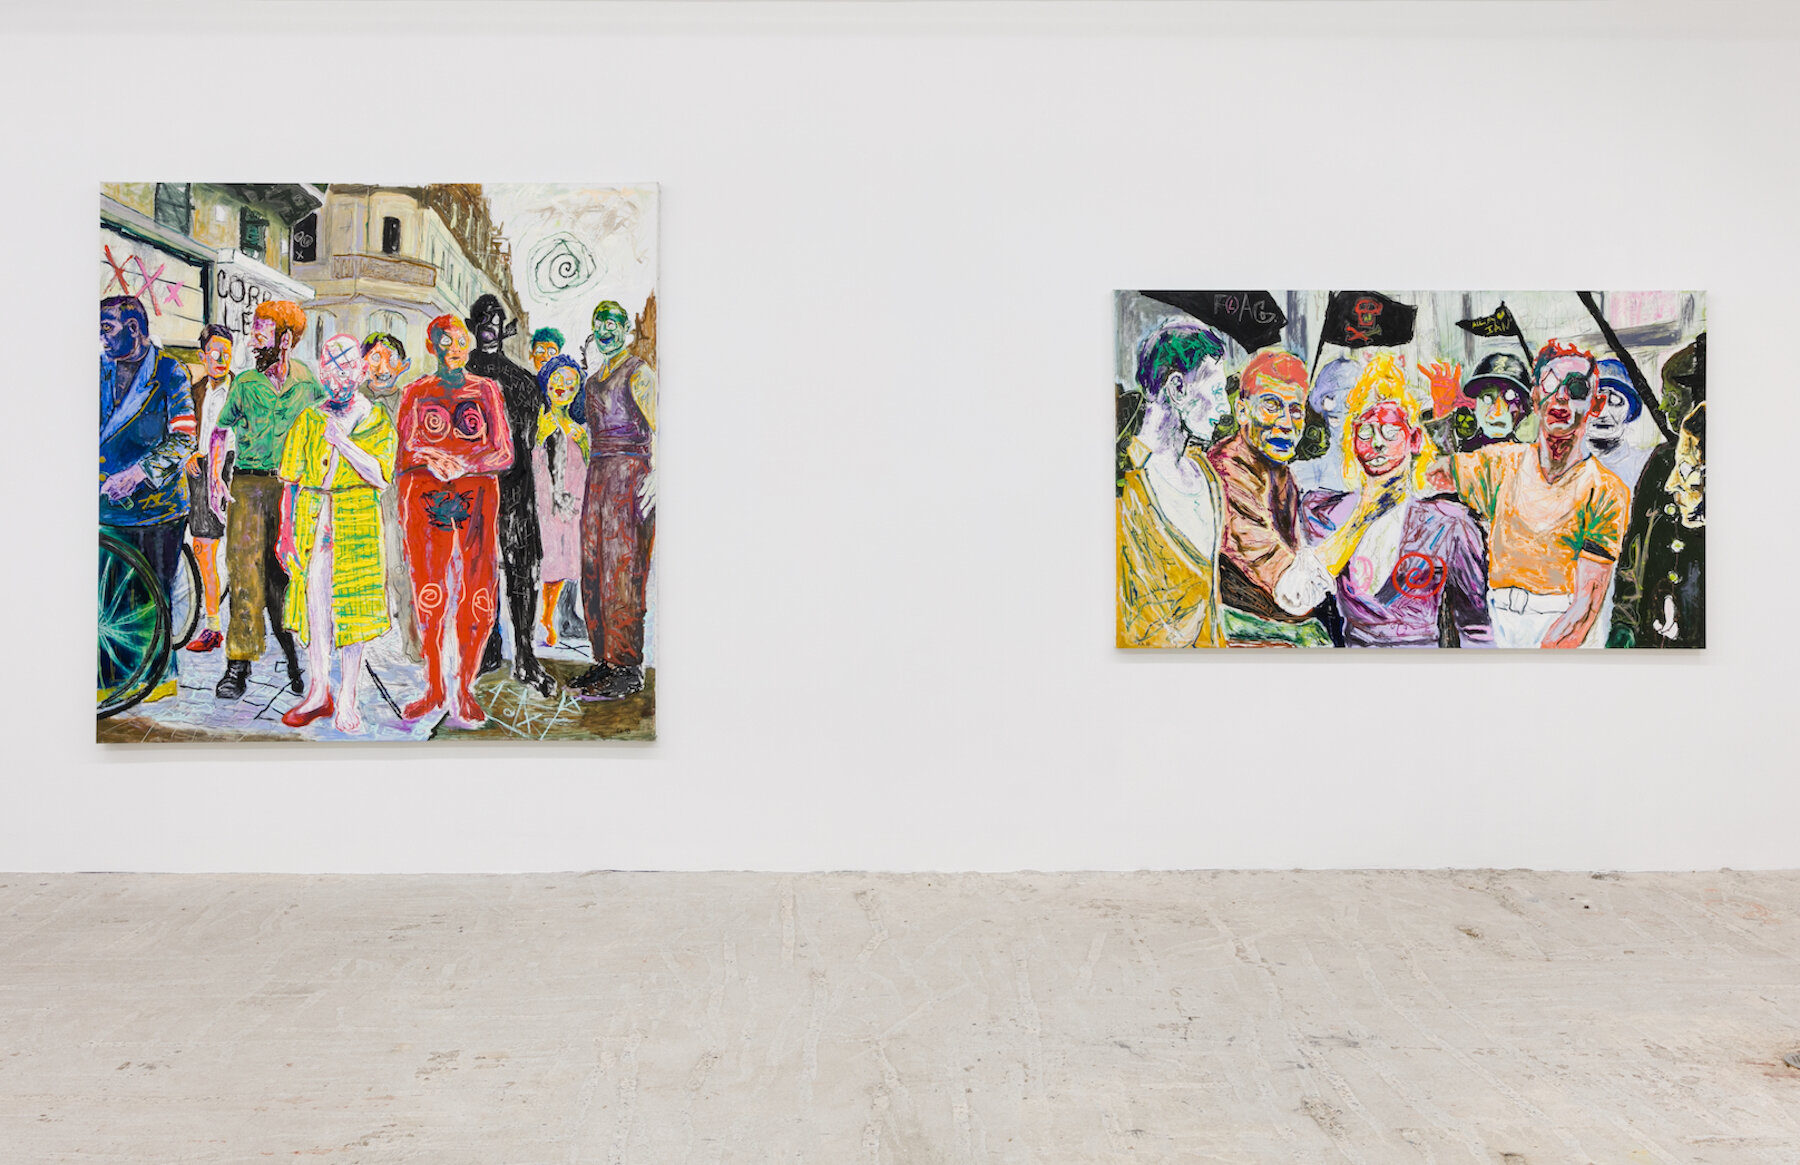 Farley Aguilar,  Cleansing,  Installation view at Lyles & King, January 18 - February 24, 2019